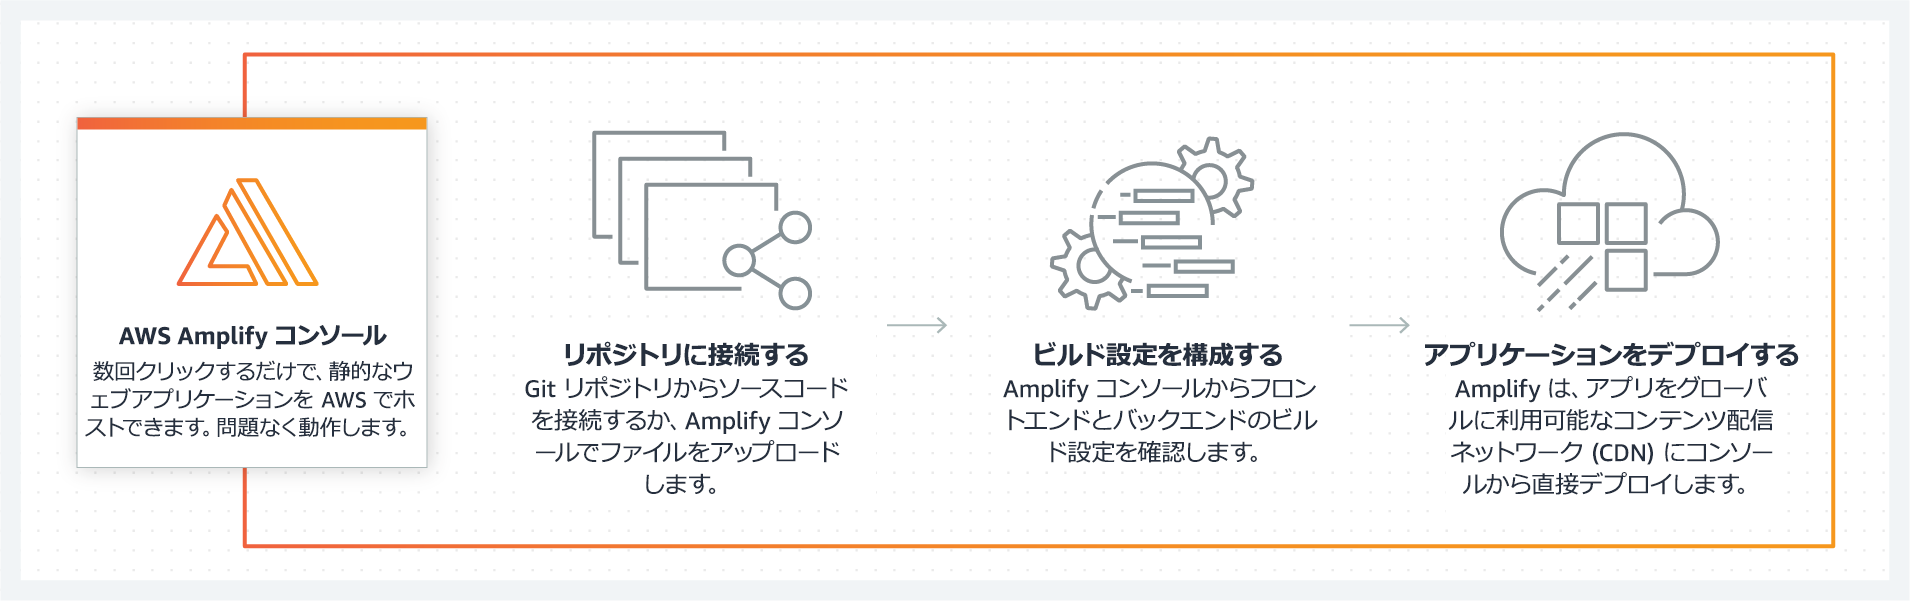 product-page-diagram_Amplify_How-it-works_2_jp